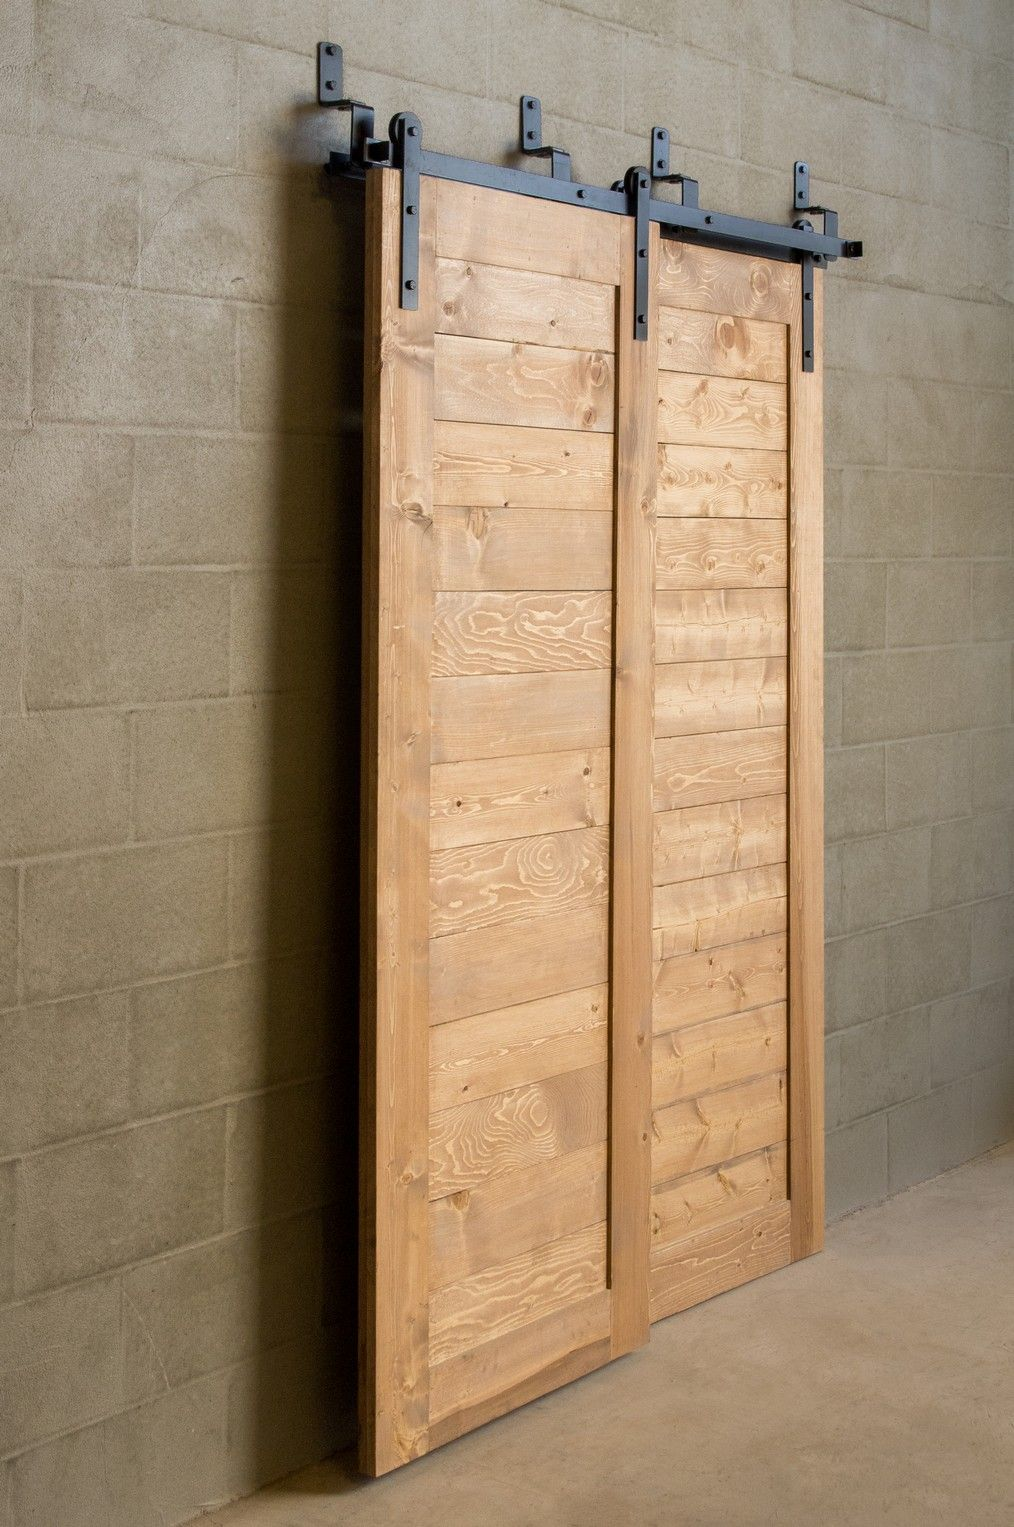 Bypass sliding barn door for tight spaces 625 hardware for Door hardware ideas